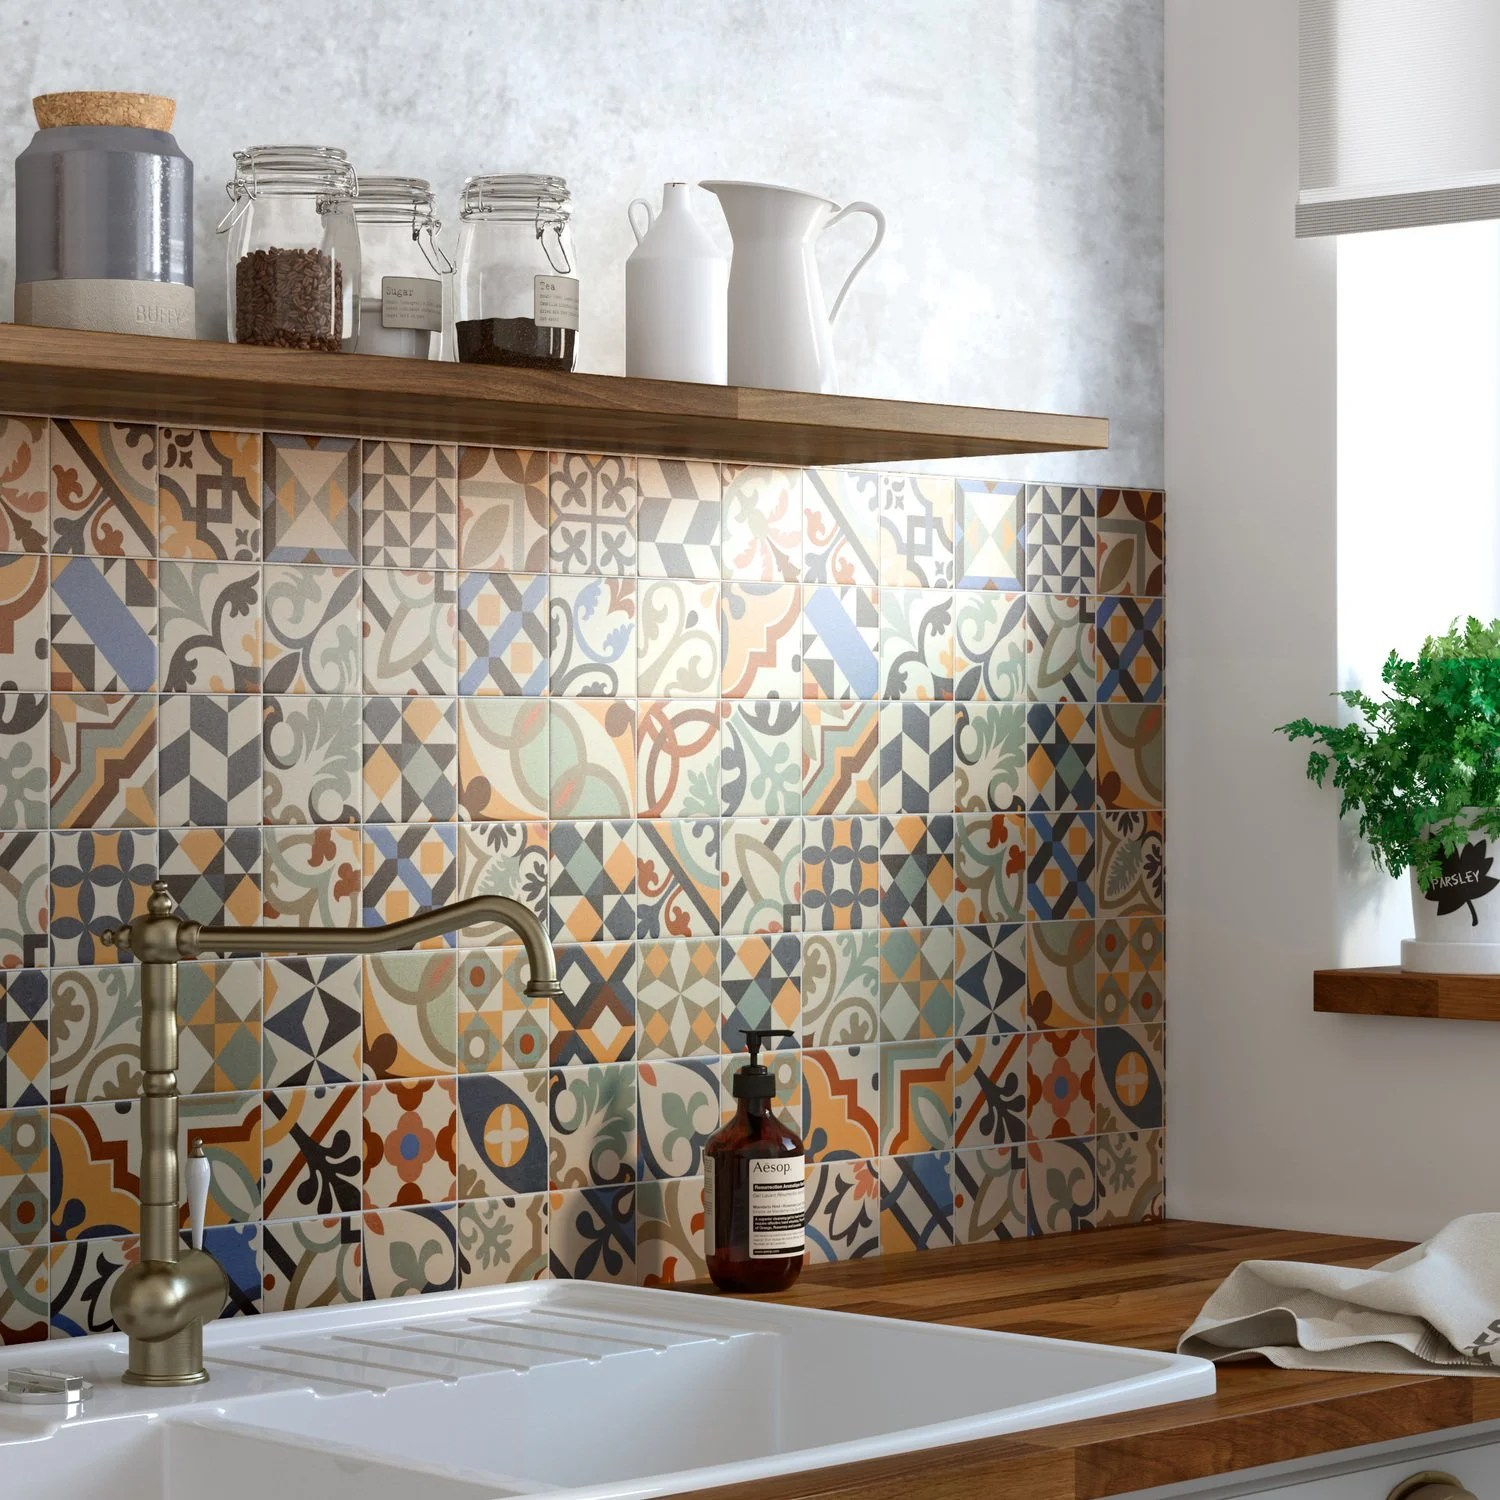 Carreaux De Ciment Porcelanosa Carreaux Ciment Wc Cheap Tile Motifs Carreaux Ciment